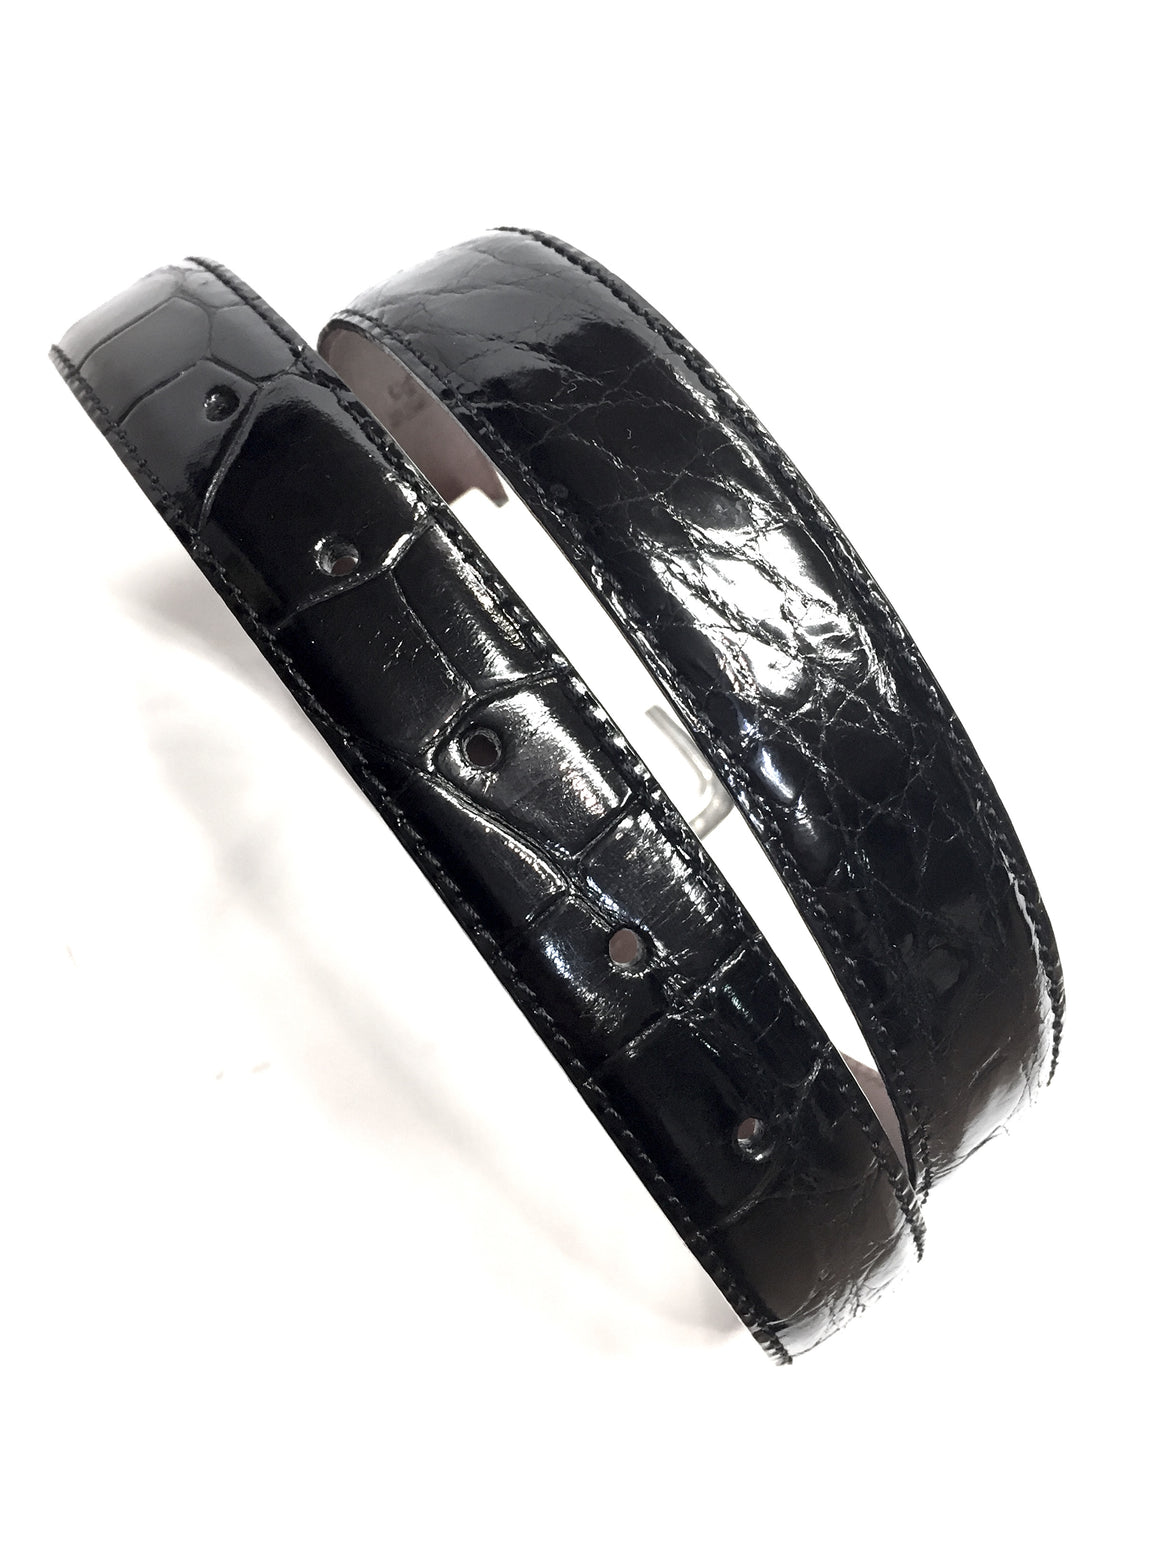 "RALPH LAUREN  New with Tags  Black Alligator Skin Waist Belt with Silver-Plated Buckle & Tip  Size: 28"" (70/85)"